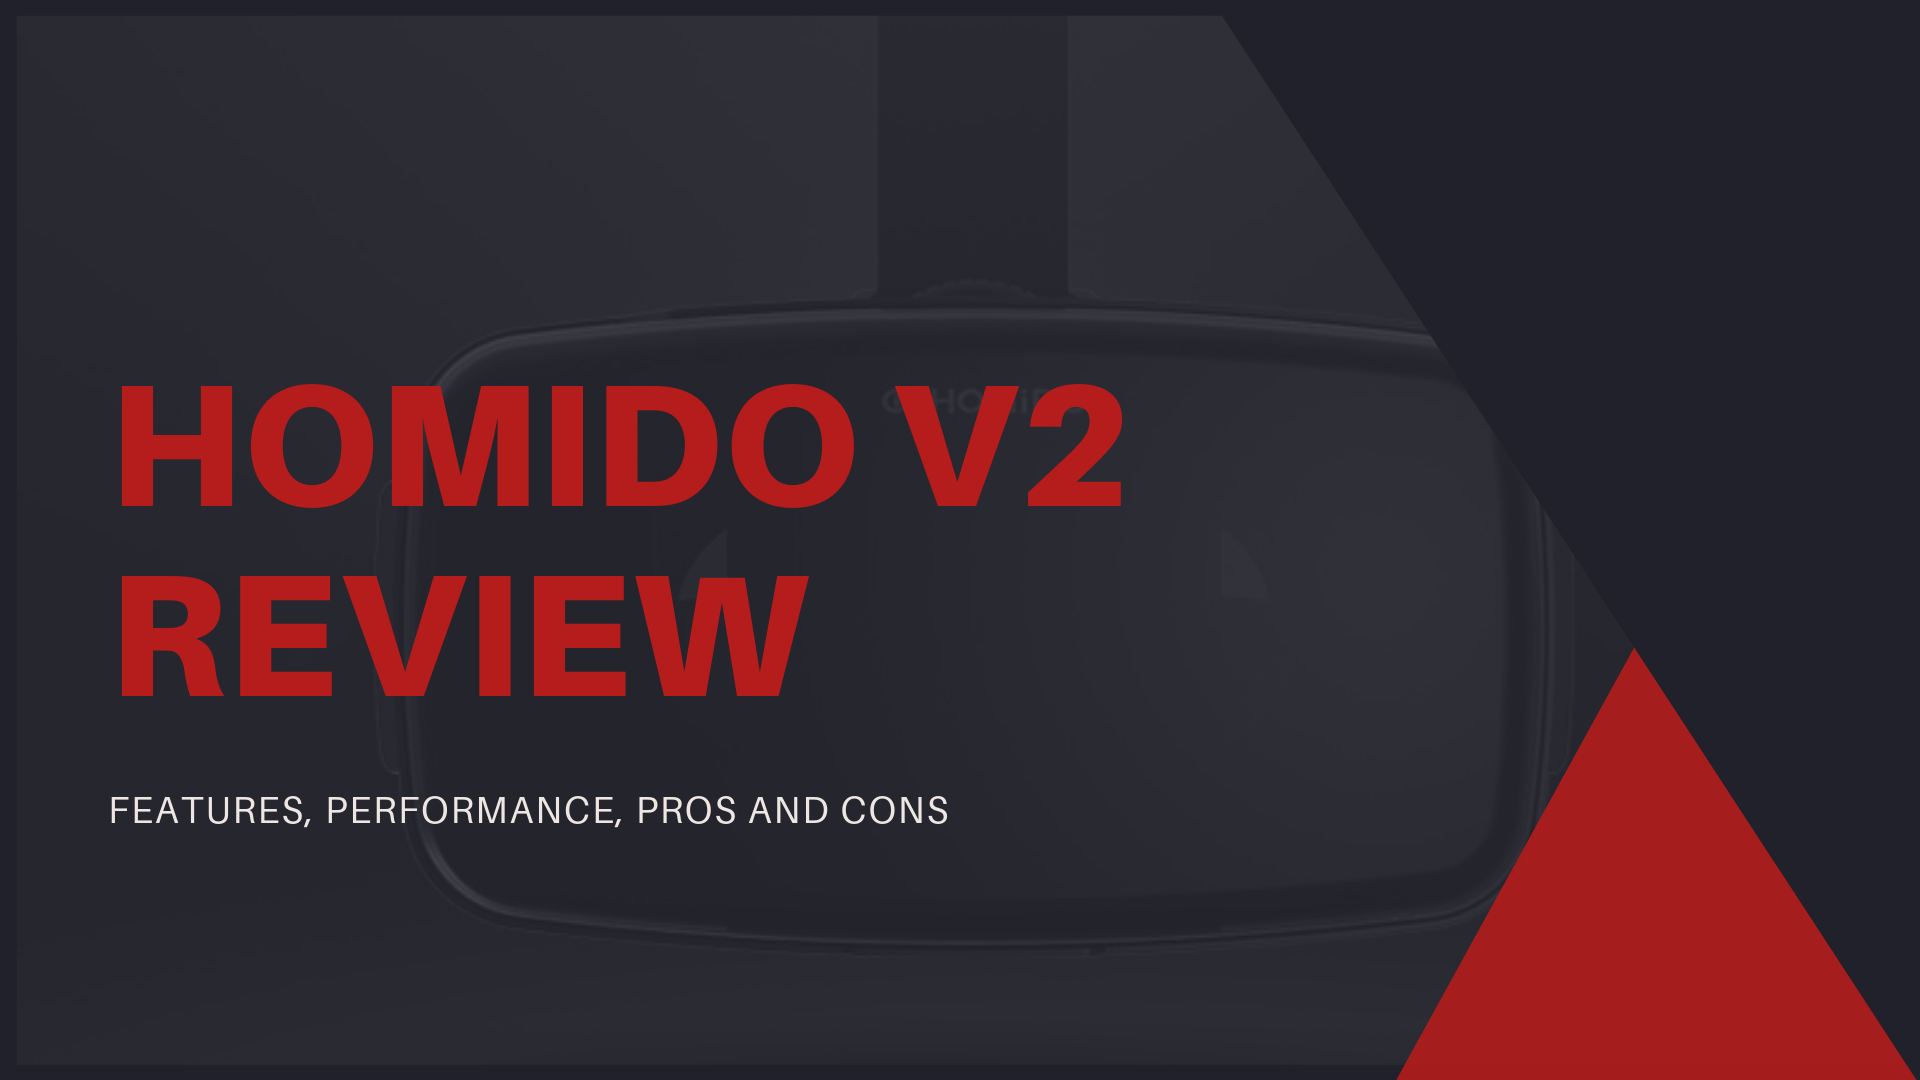 Homido V2 Review – Features, Performance, Pros and Cons